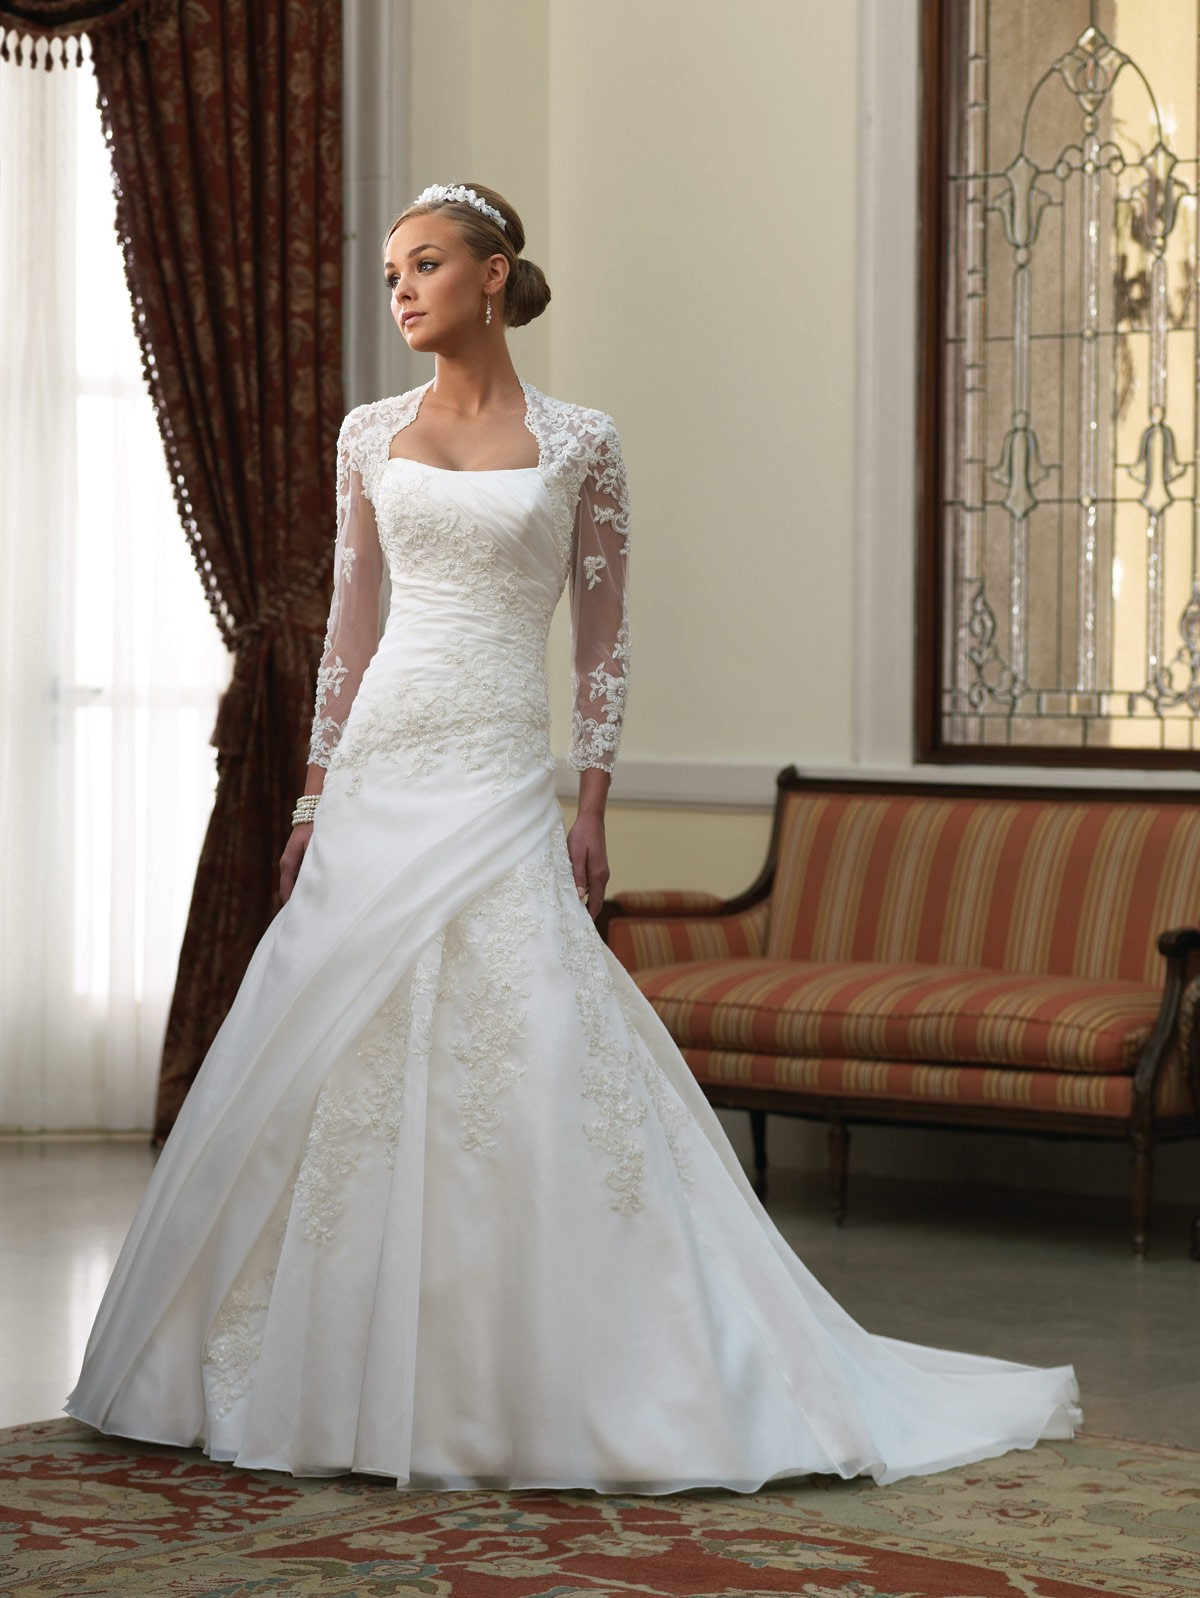 Wedding Dress Images Lace : So romantic and feminine with lace wedding dresses